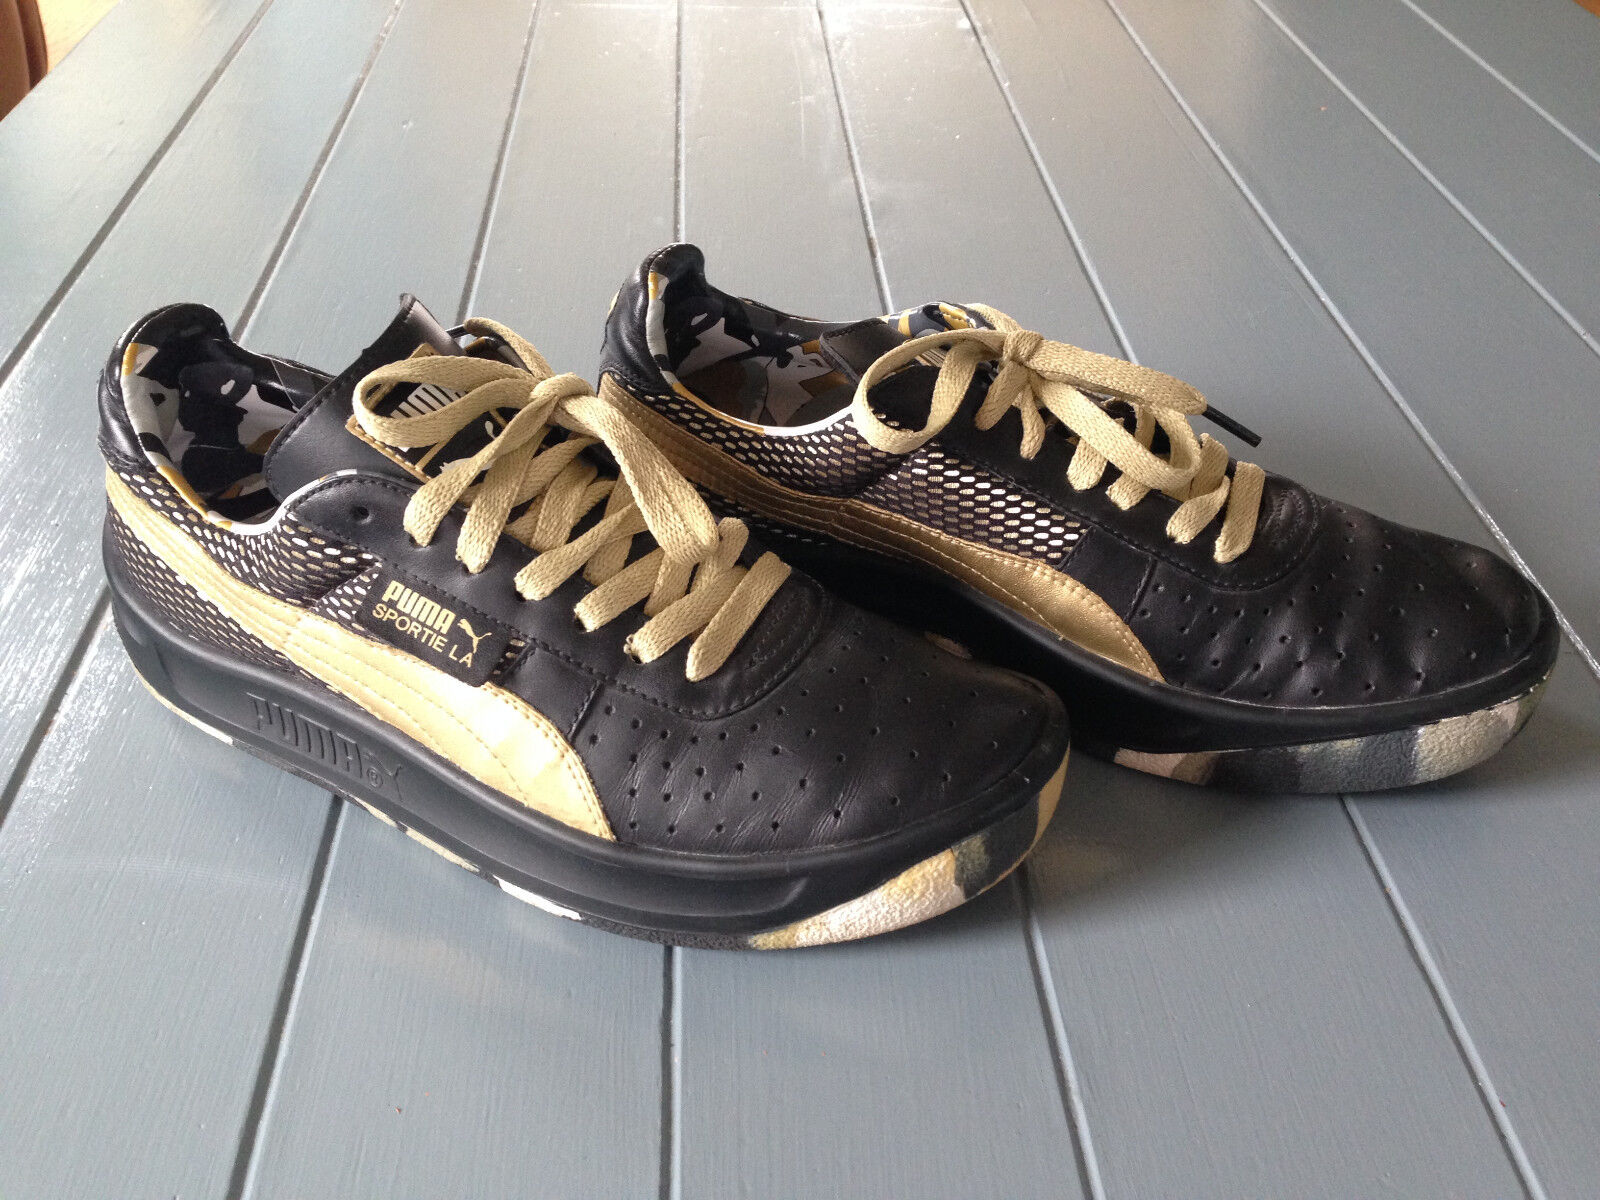 PUMA 2008 California Sportie LA Black gold Camo US 6.5 Limited Edition only 150